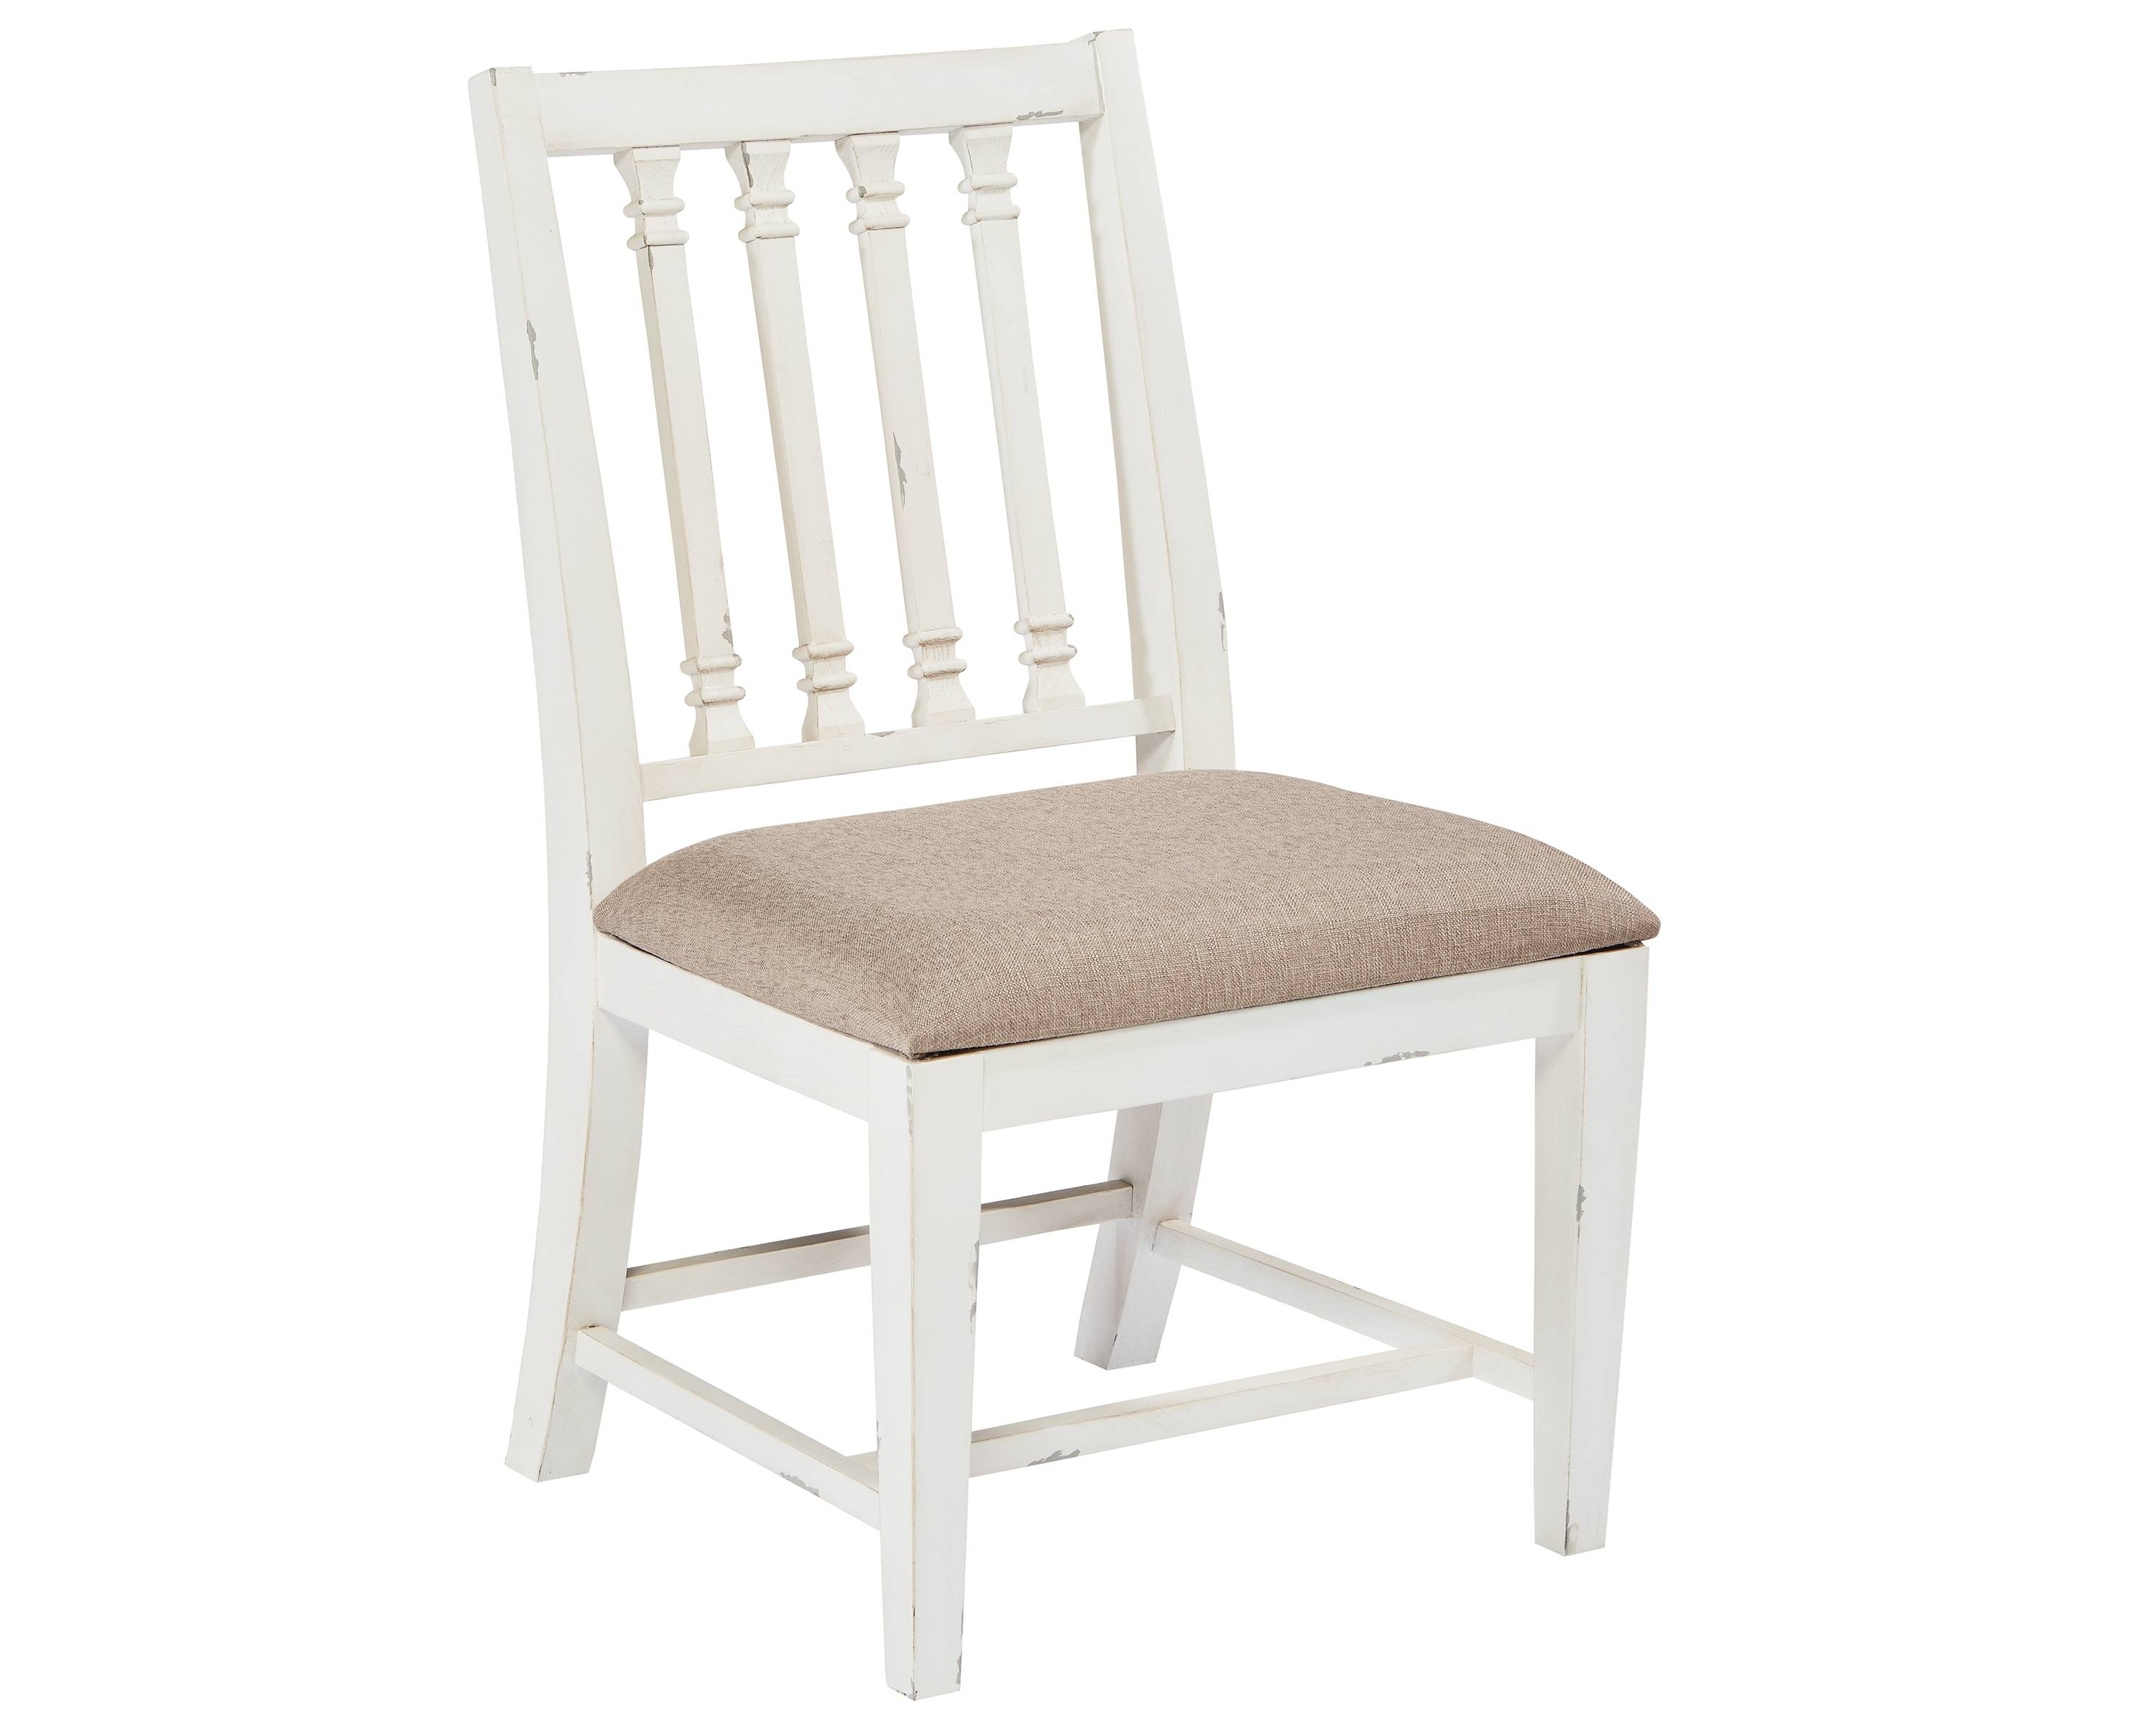 Inspiration about Magnolia Home Revival Side Chairs Within Favorite Revival Side Chair – Magnolia Home (#4 of 20)